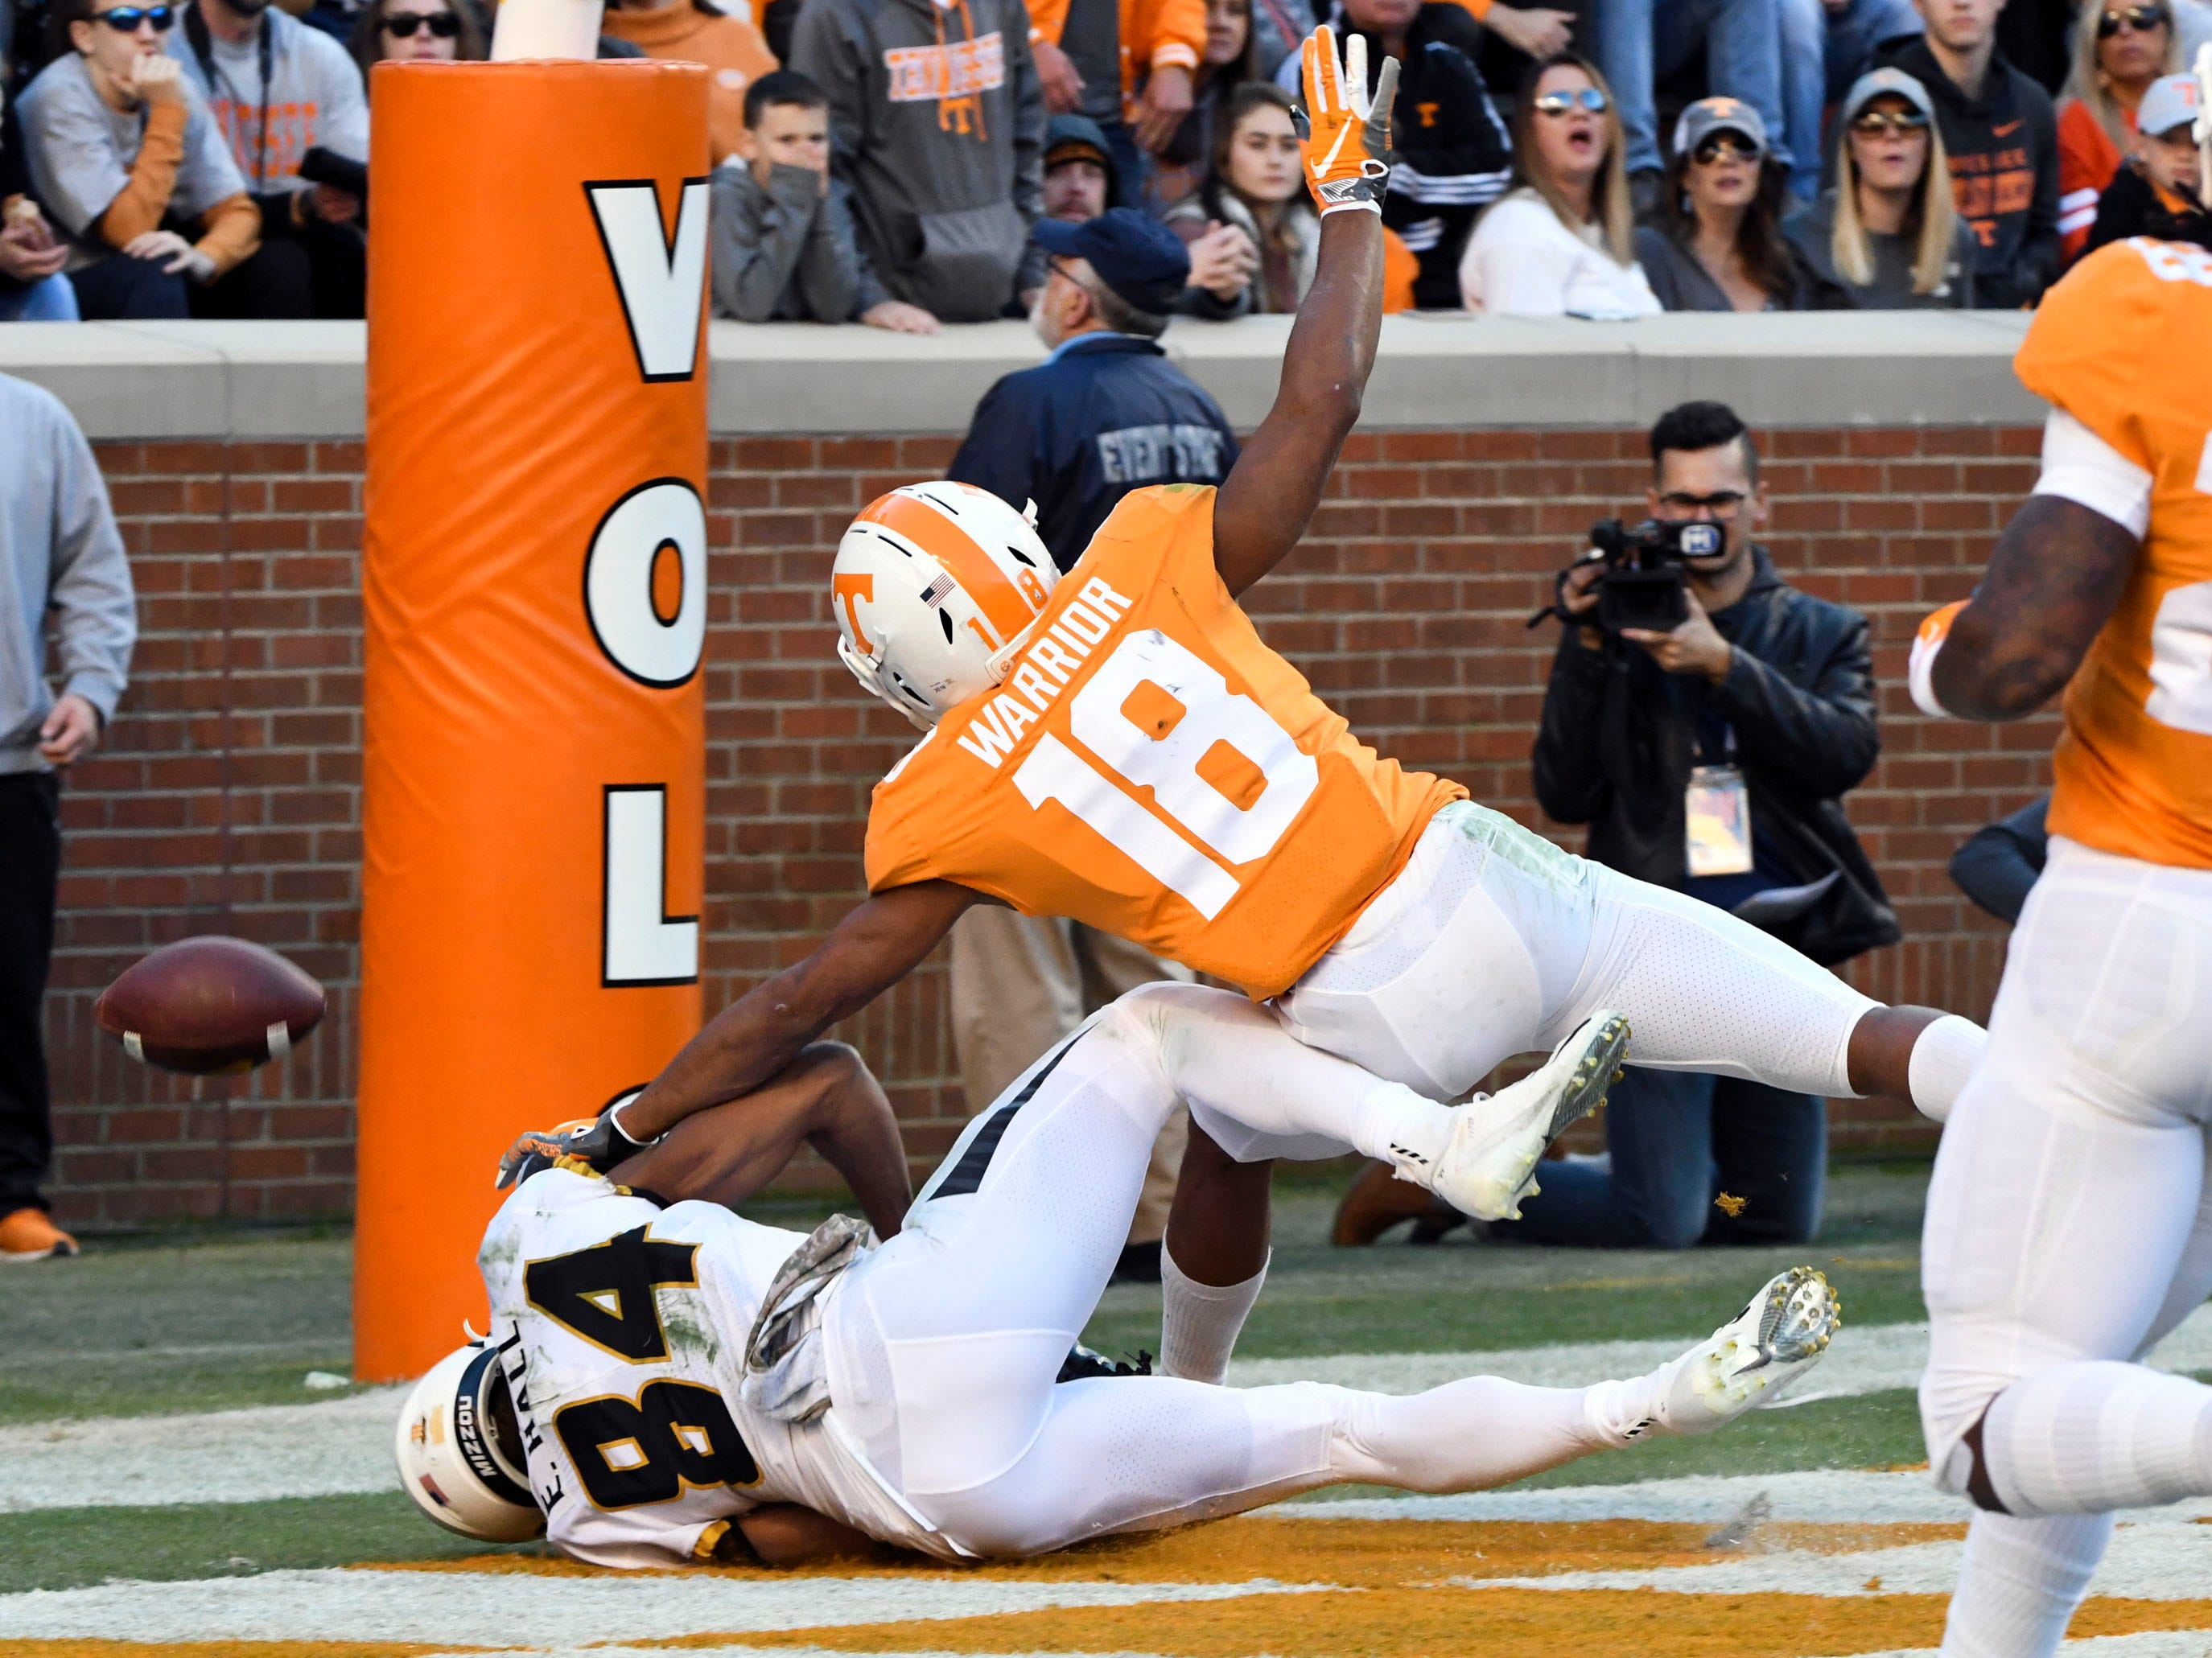 Tennessee defensive back Nigel Warrior (18) breaks up a pass intended for Missouri wide receiver Emanuel Hall (84)  during the Tennessee and Missouri football game on Saturday, November 17, 2018.